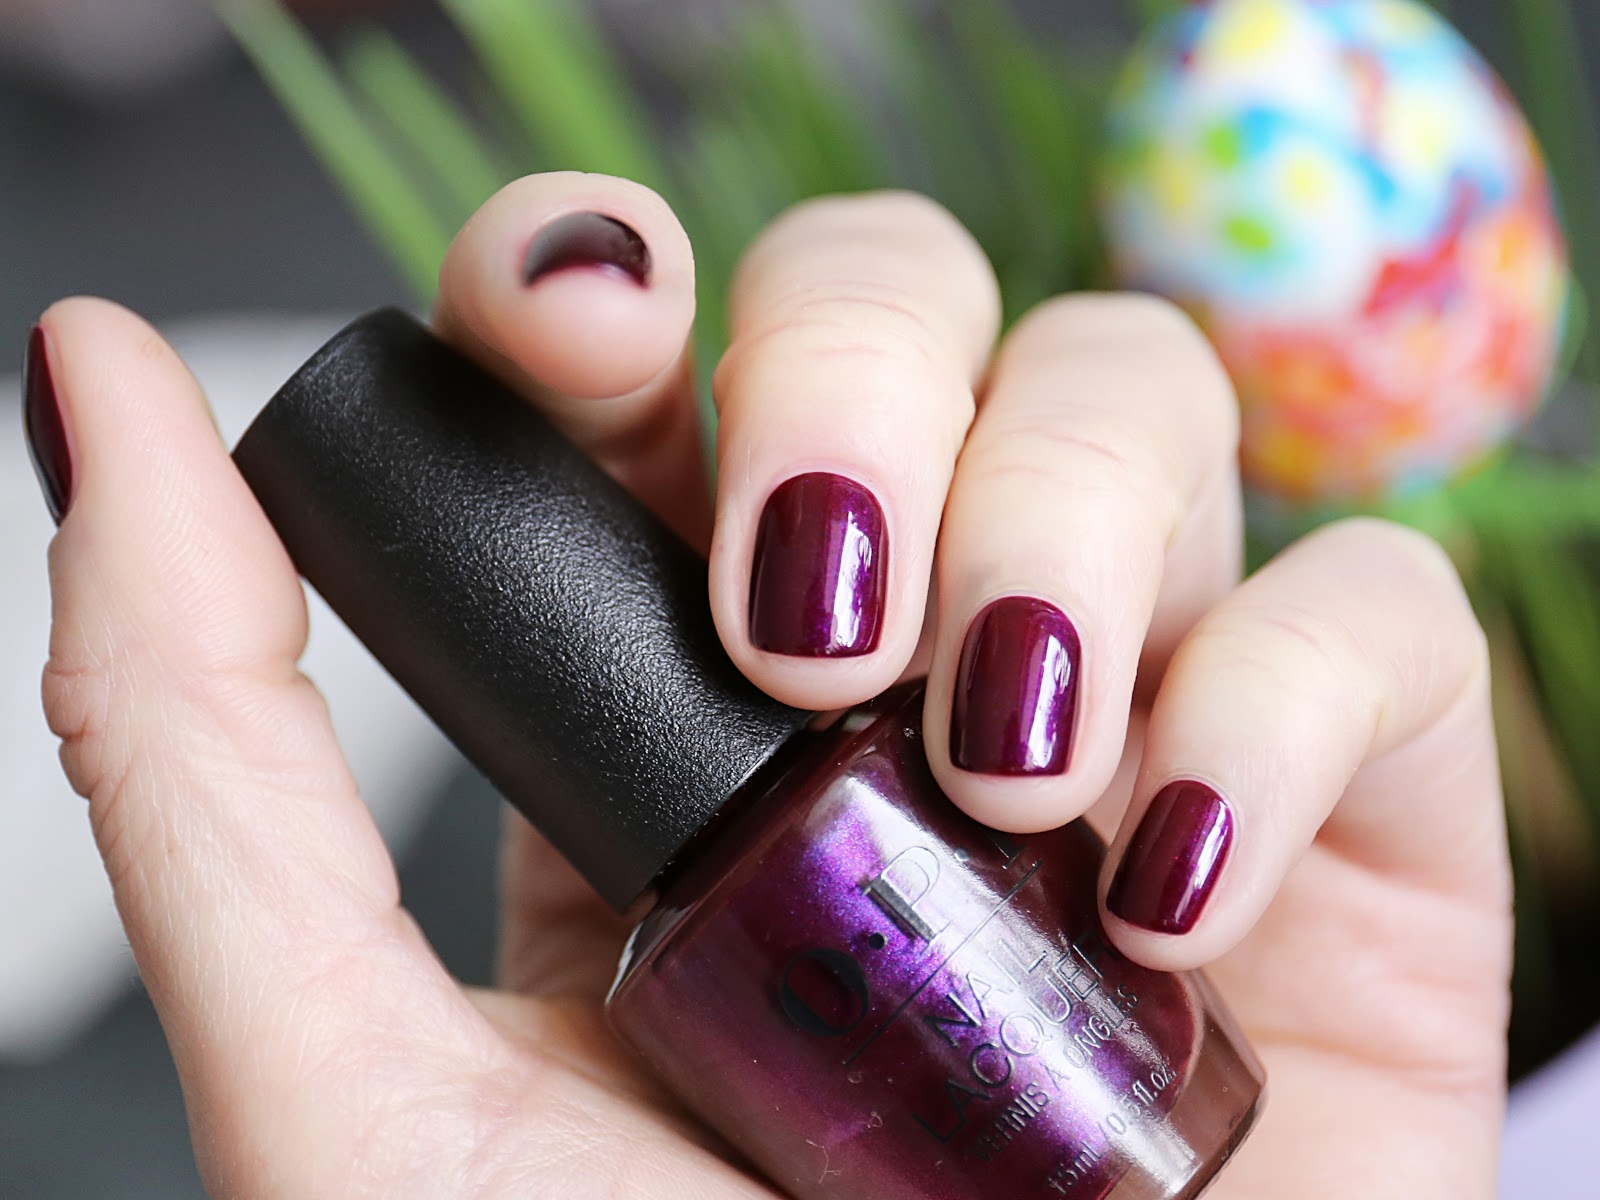 OPI And The Raven Cried Give Me More